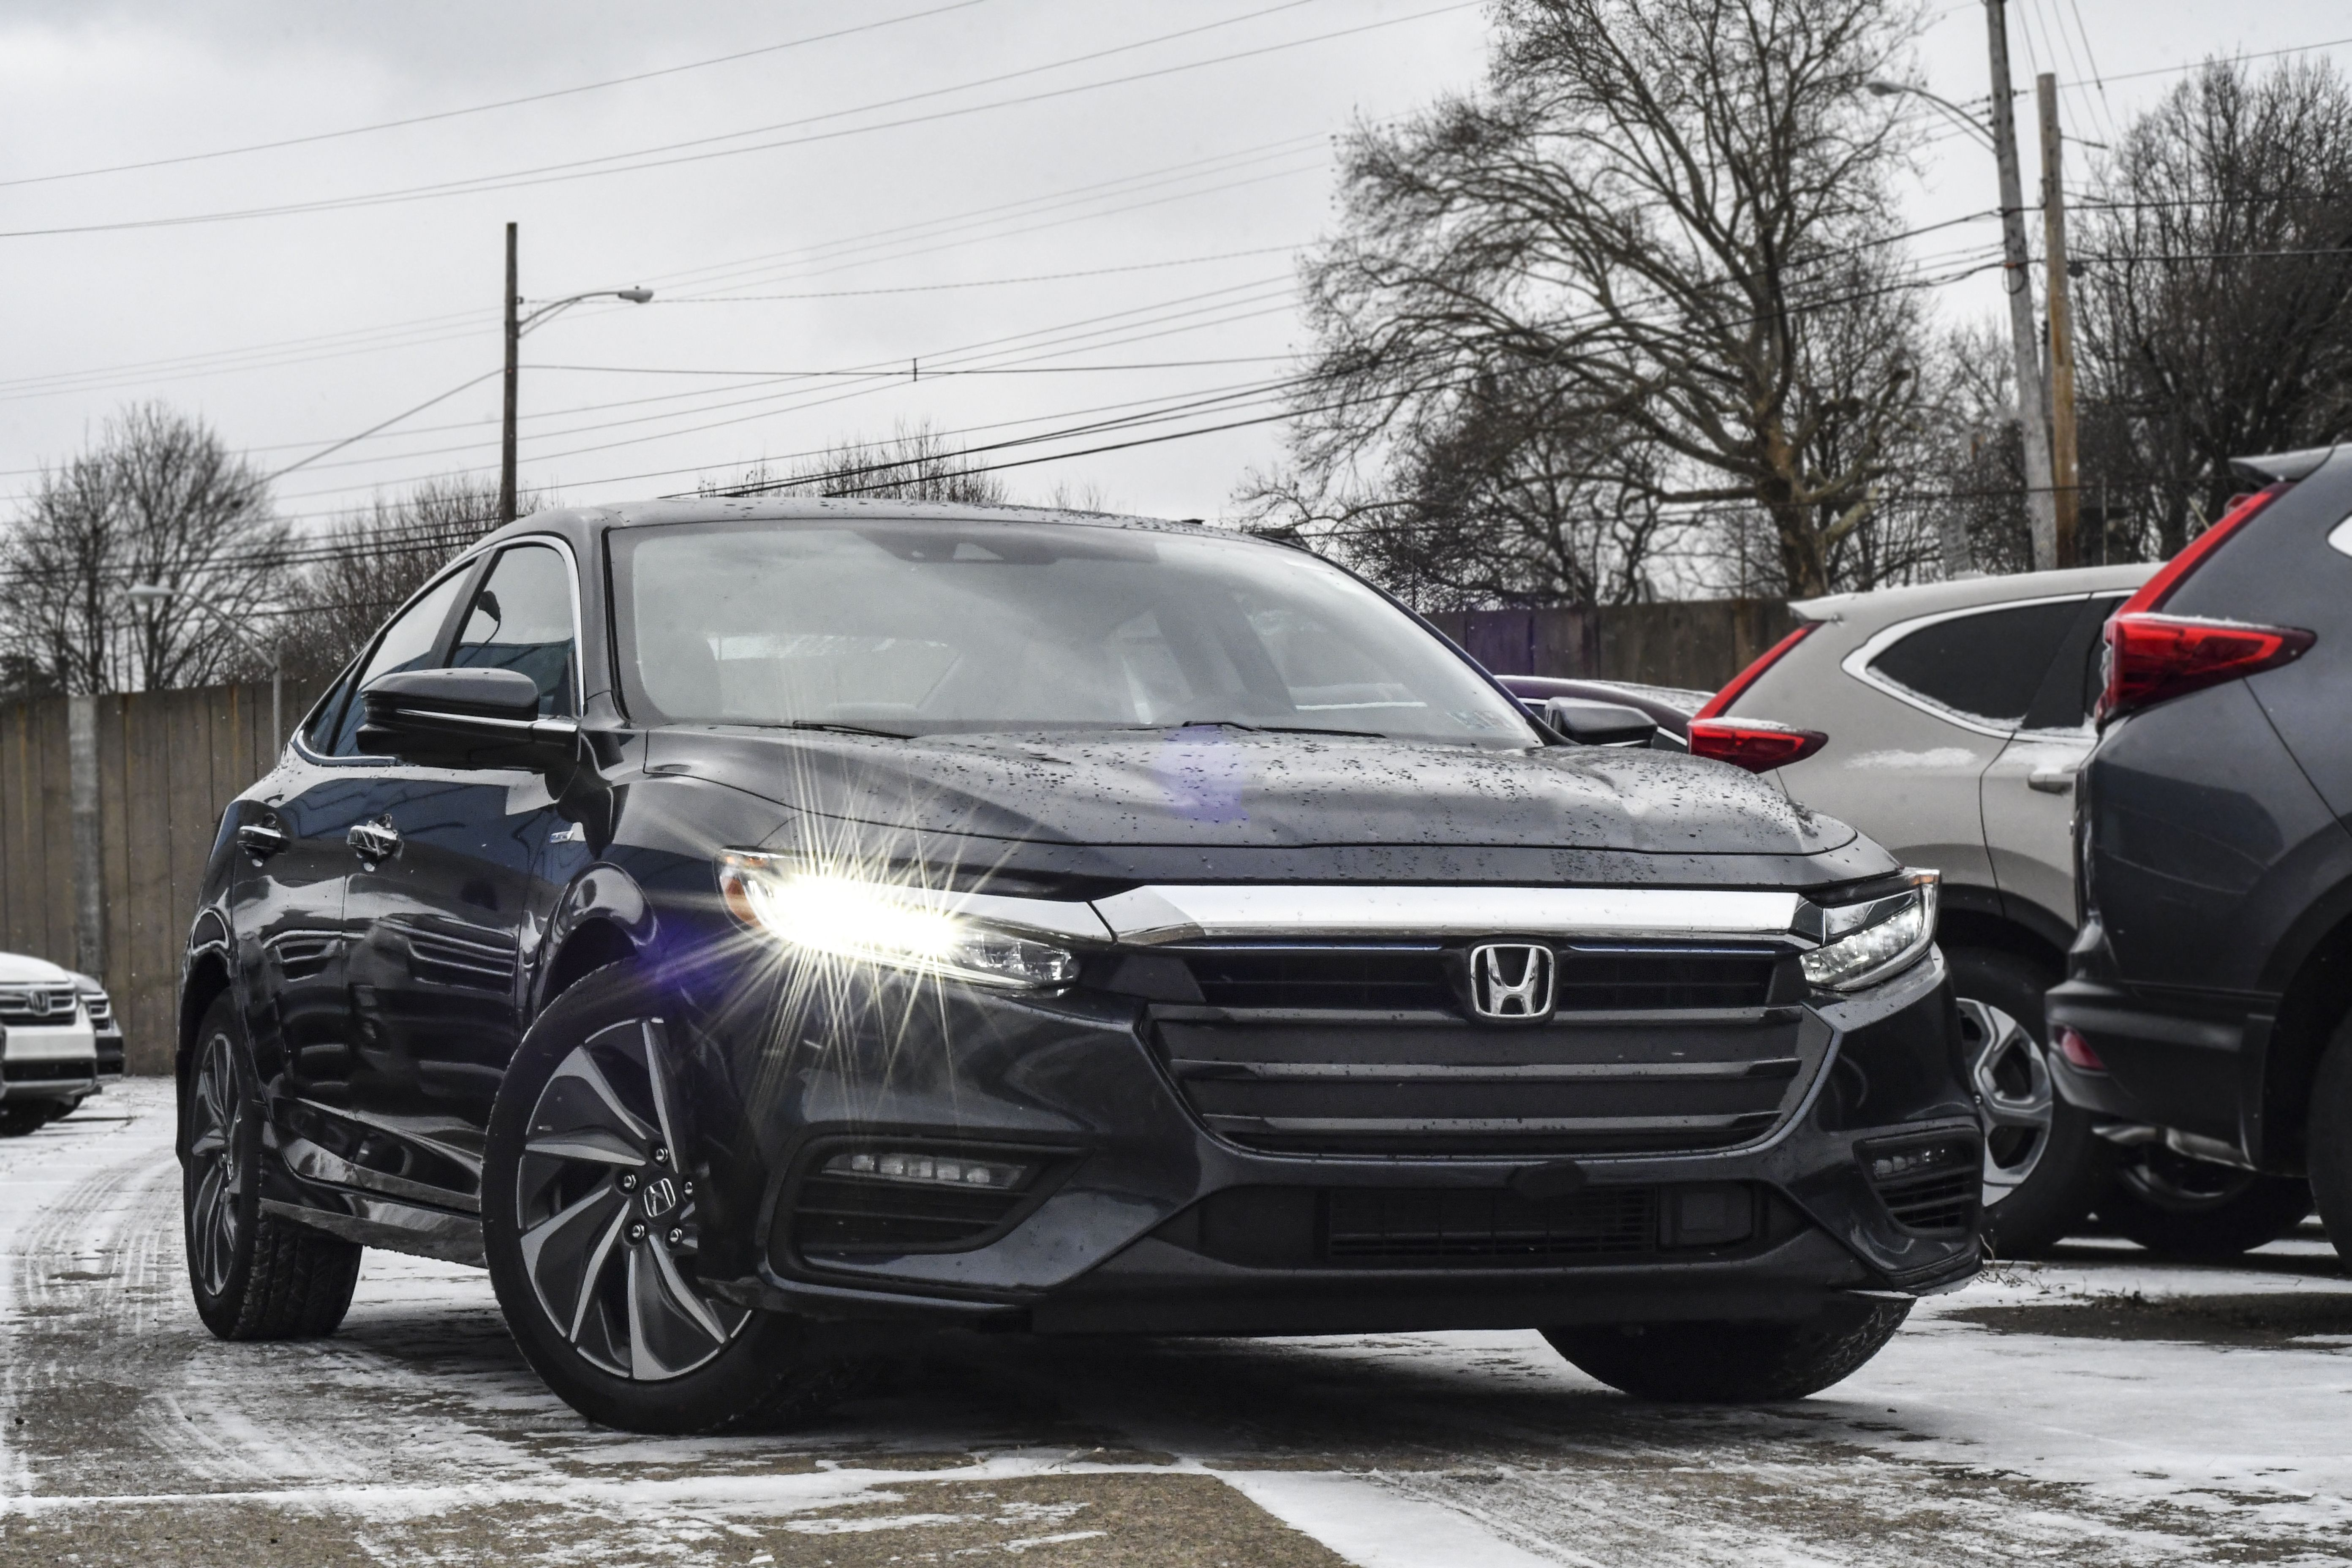 2019 Honda Insight Touring Honda insight, Honda cars, Honda